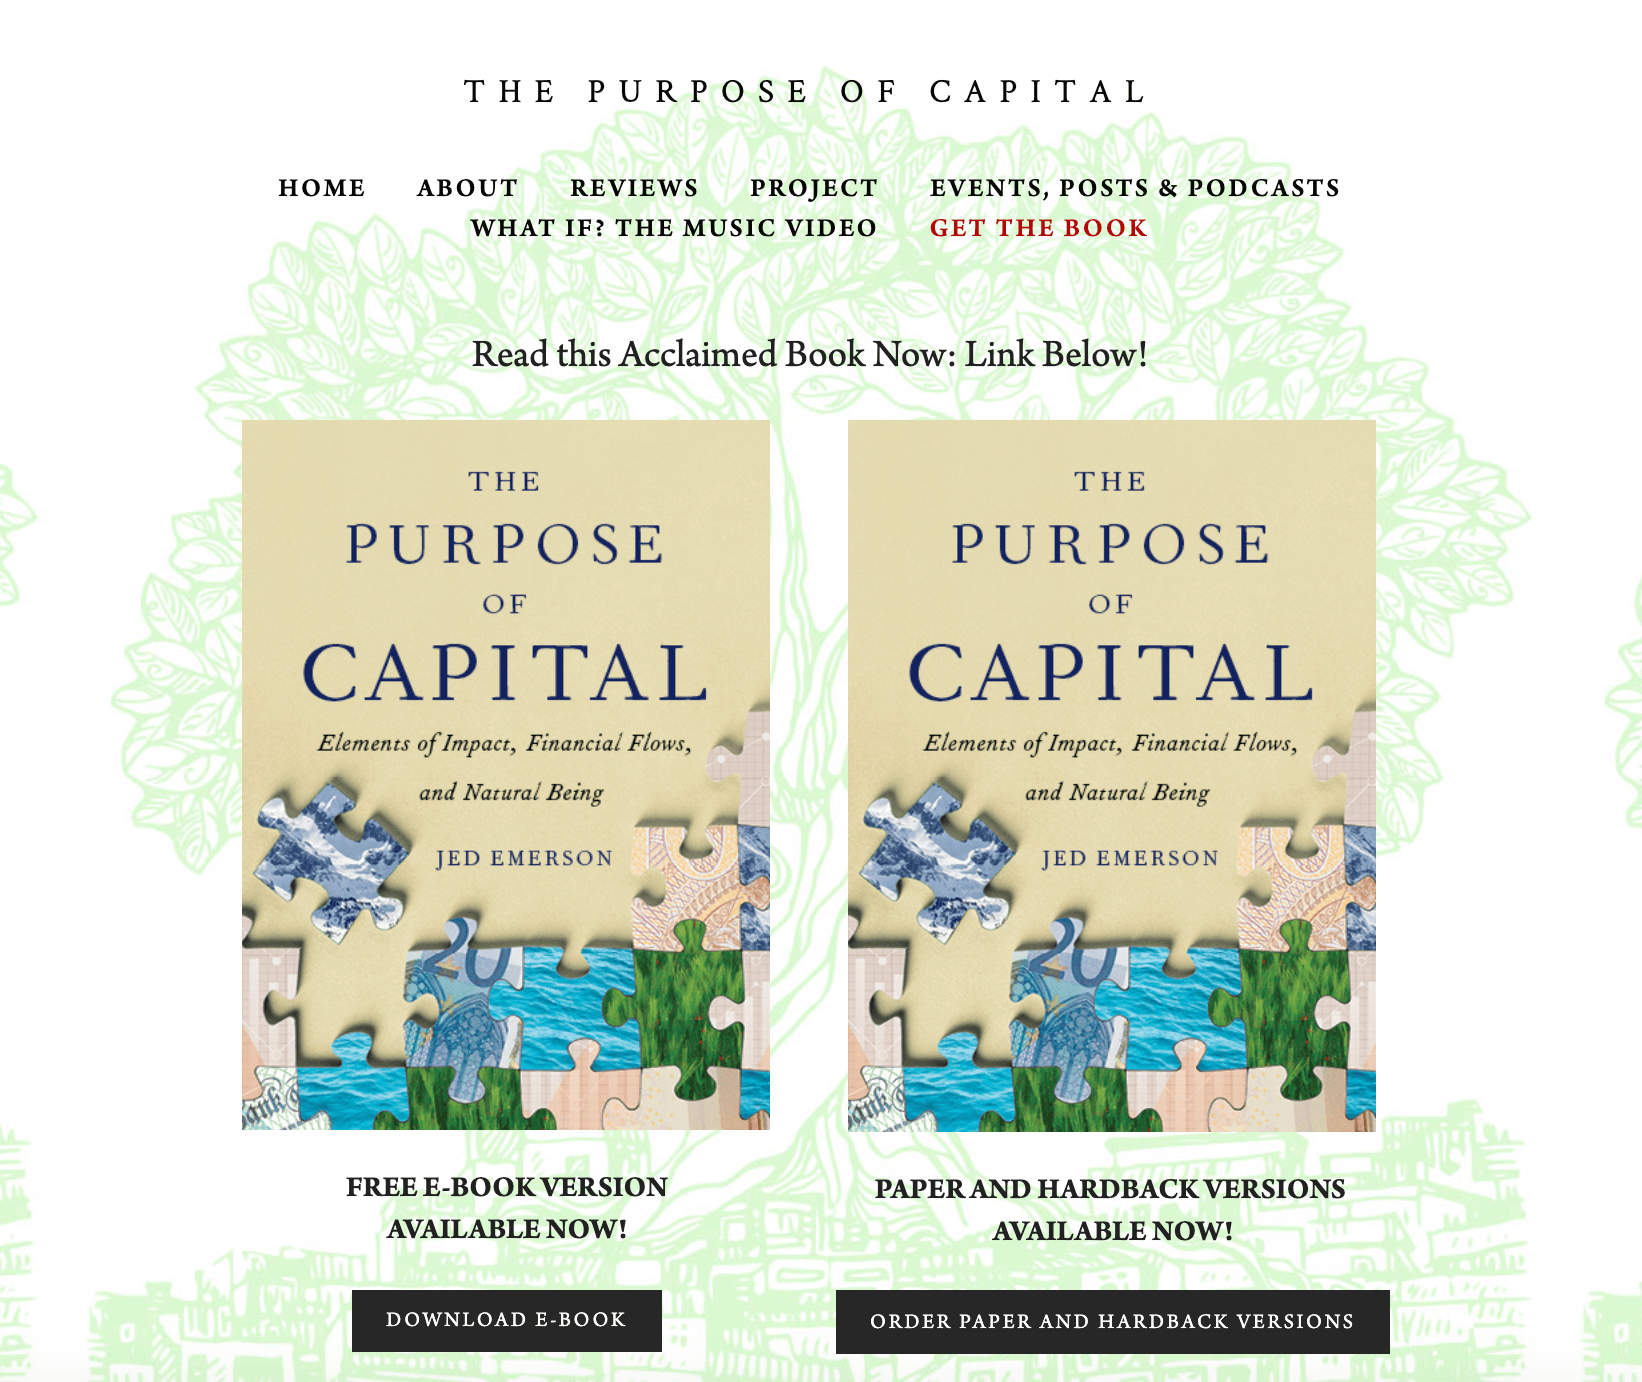 The Purpose of Capital's Book Landing Page